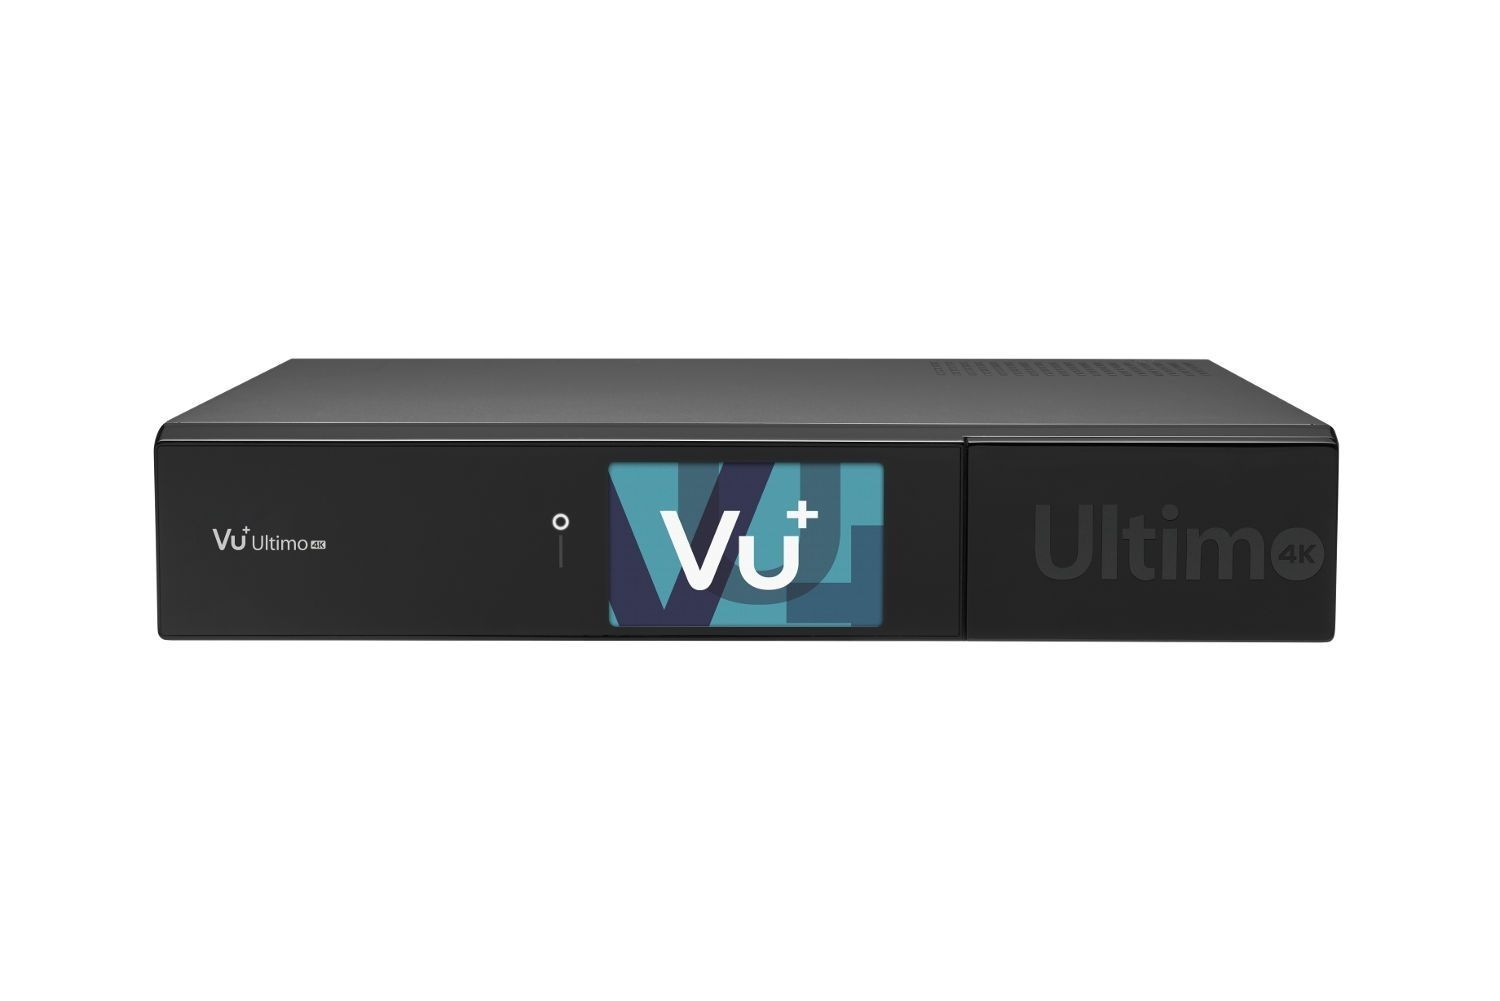 VU+ Ultimo 4K 2x DVB-C FBC / 1x DVB-S2 Dual Tuner 2 TB HDD Linux Receiver UHD 2160p